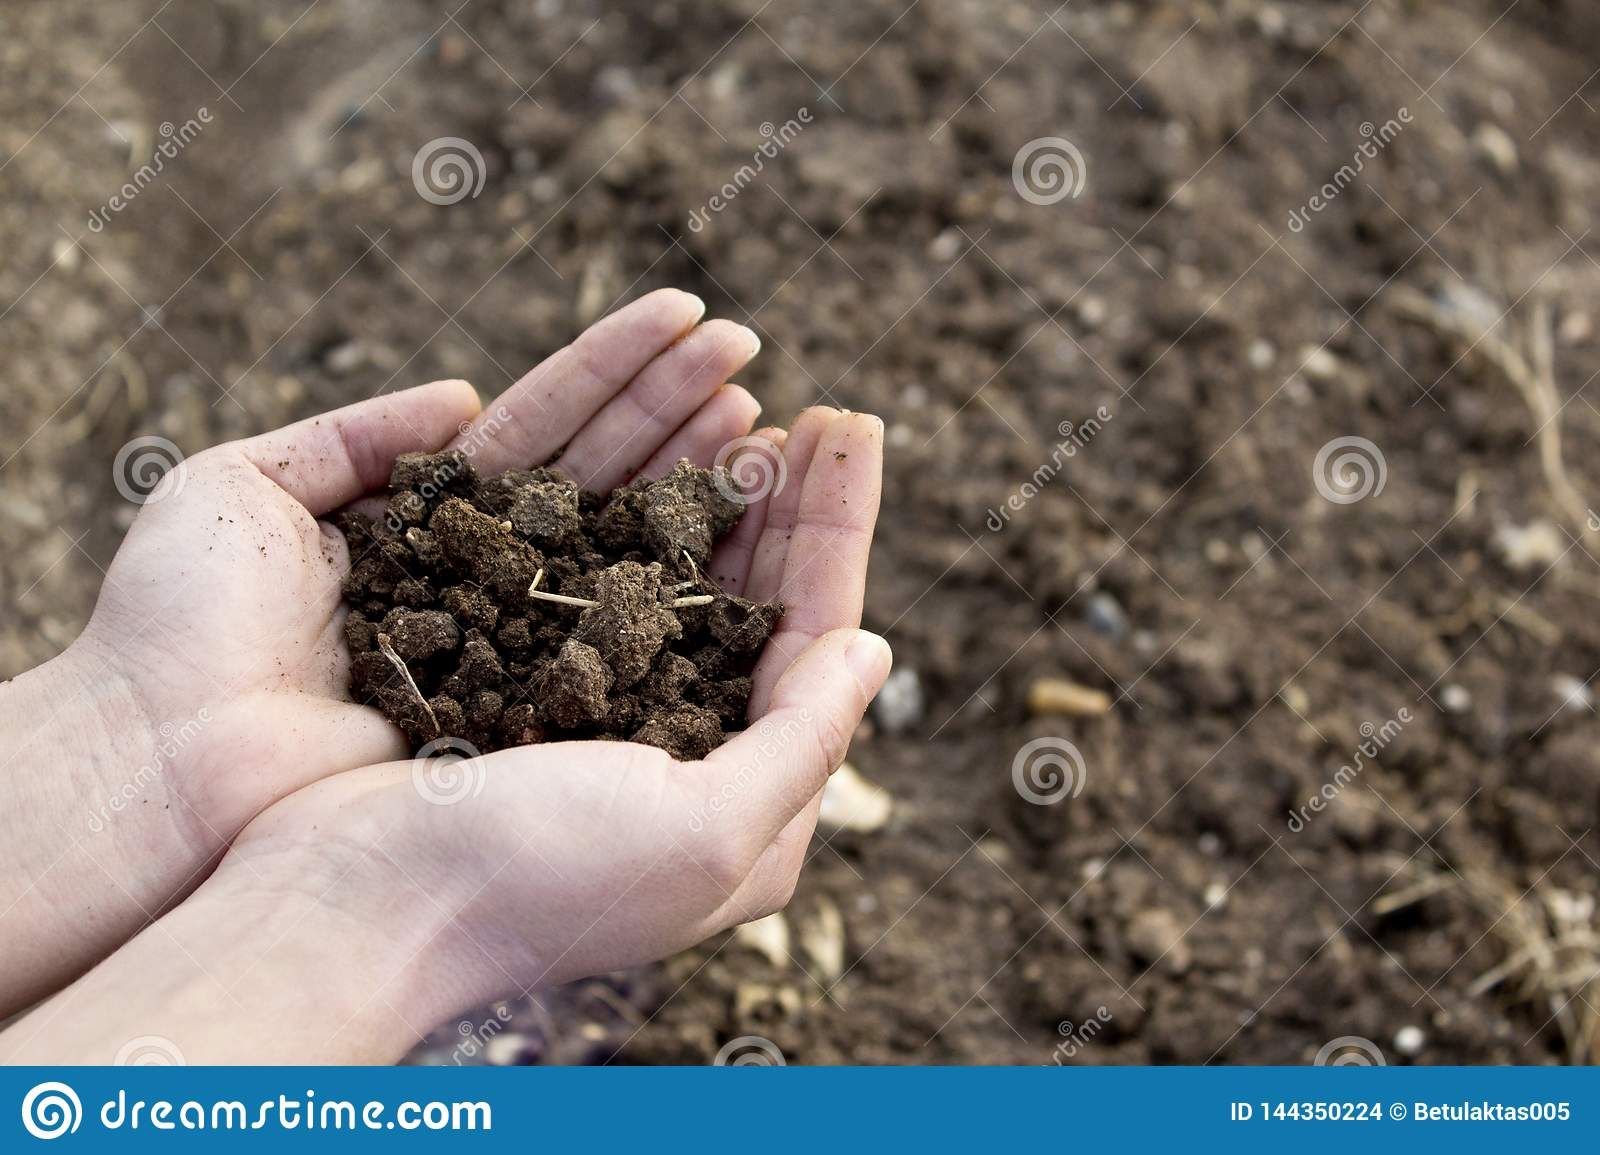 Hands holding soil in agricultural field.